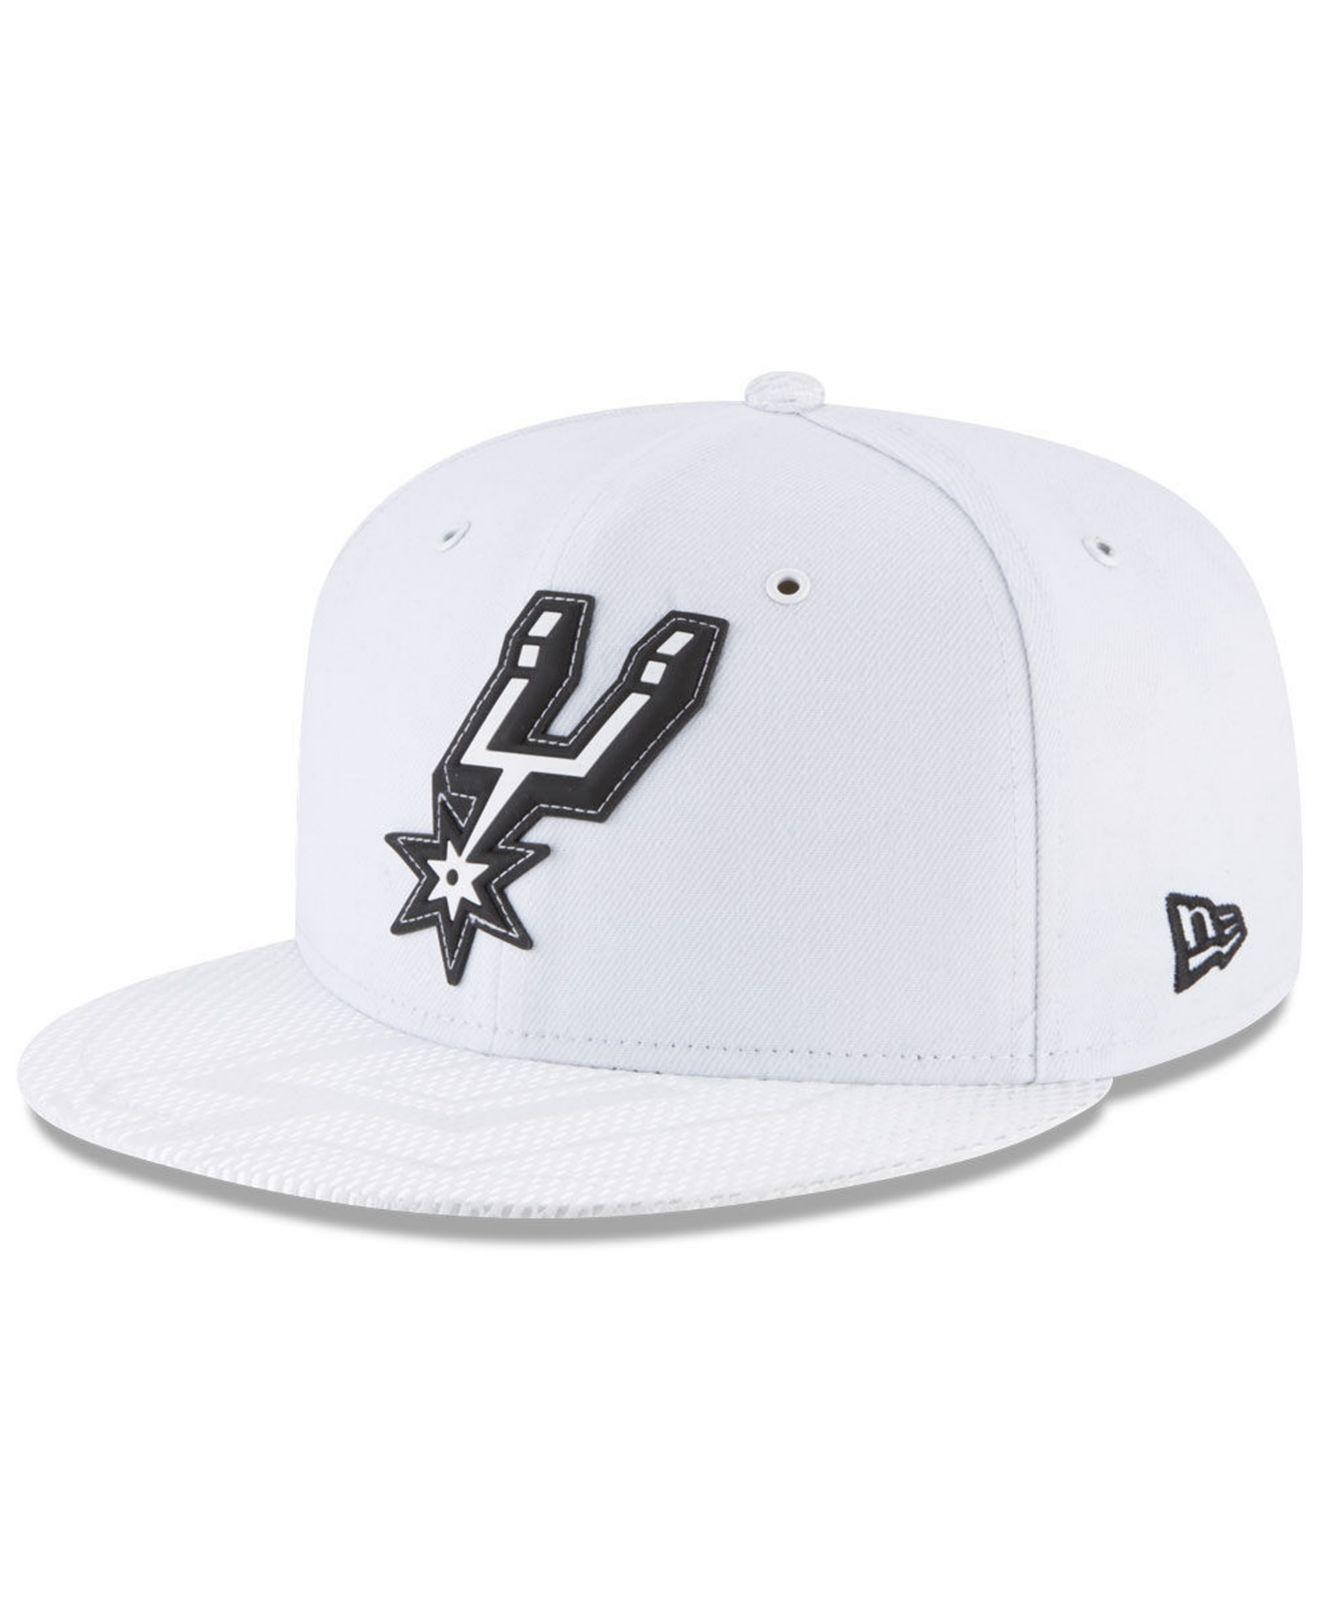 cheap for discount 32f7a fe54b ... shop lyst ktz san antonio spurs back 1 2 series 9fifty snapback cap in  1b833 c44e6